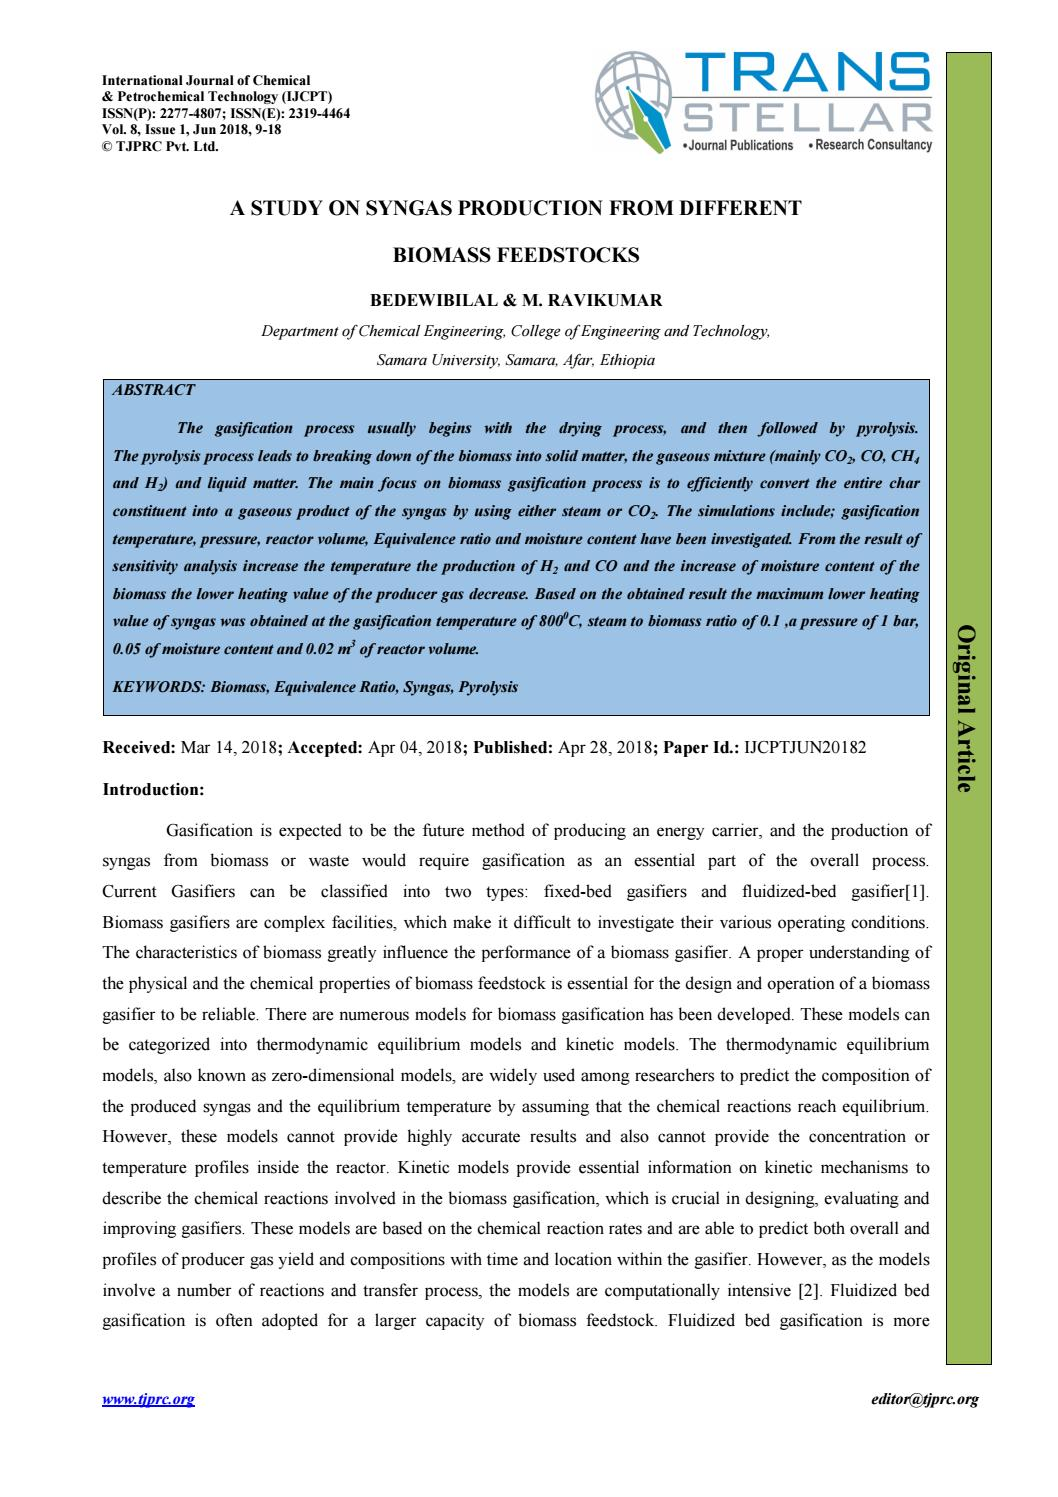 A Study on Syngas Production from Different Biomass Feedstocks by